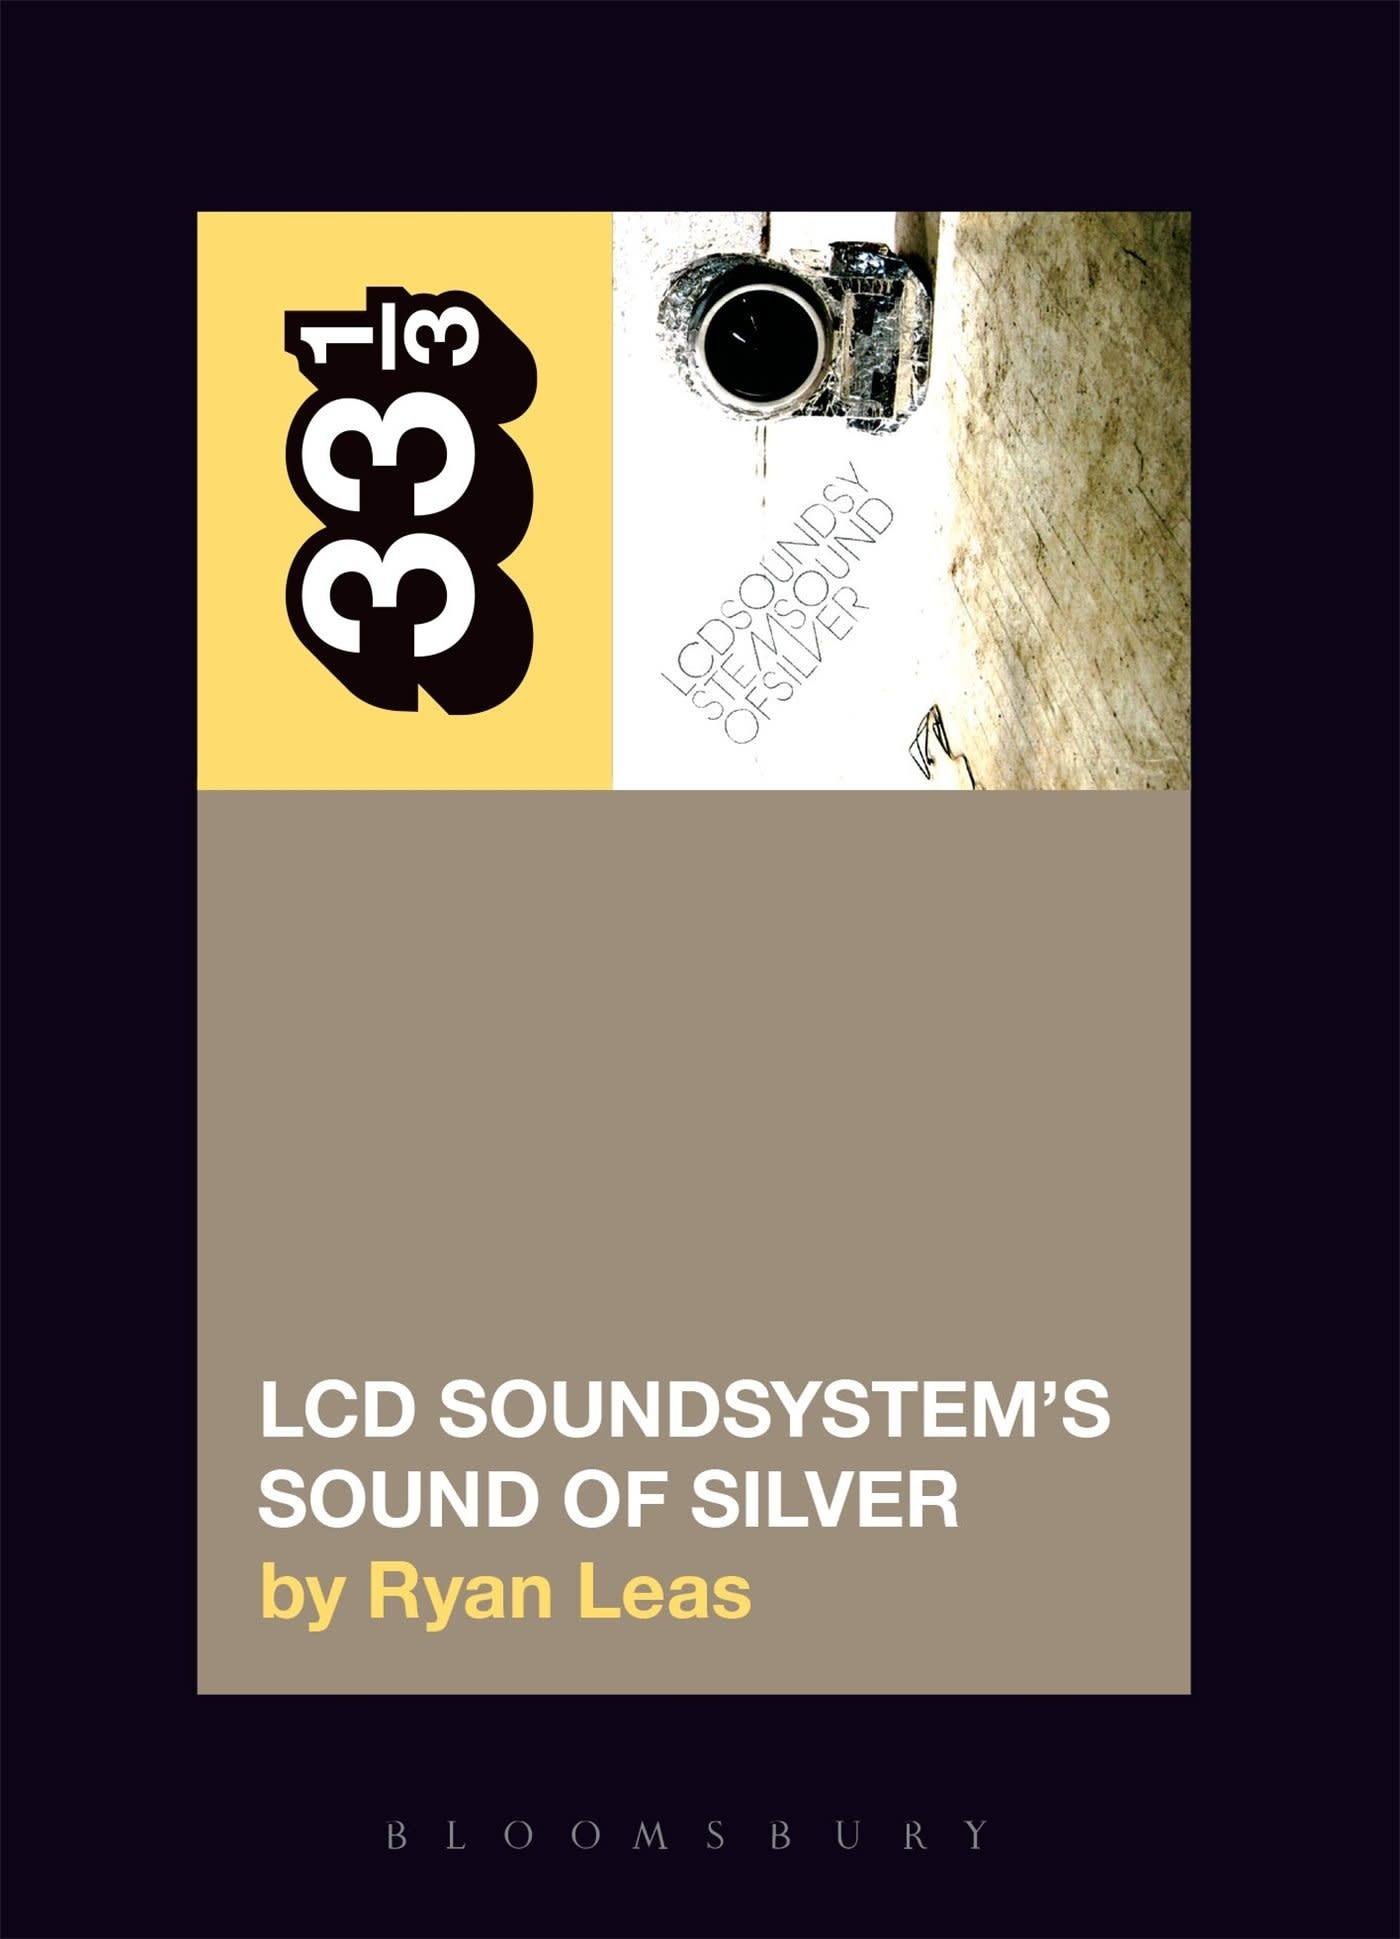 33 1/3 Series 33 1/3 - #116 - LCD Soundsystem's Sound Of Silver - Ryan Leas